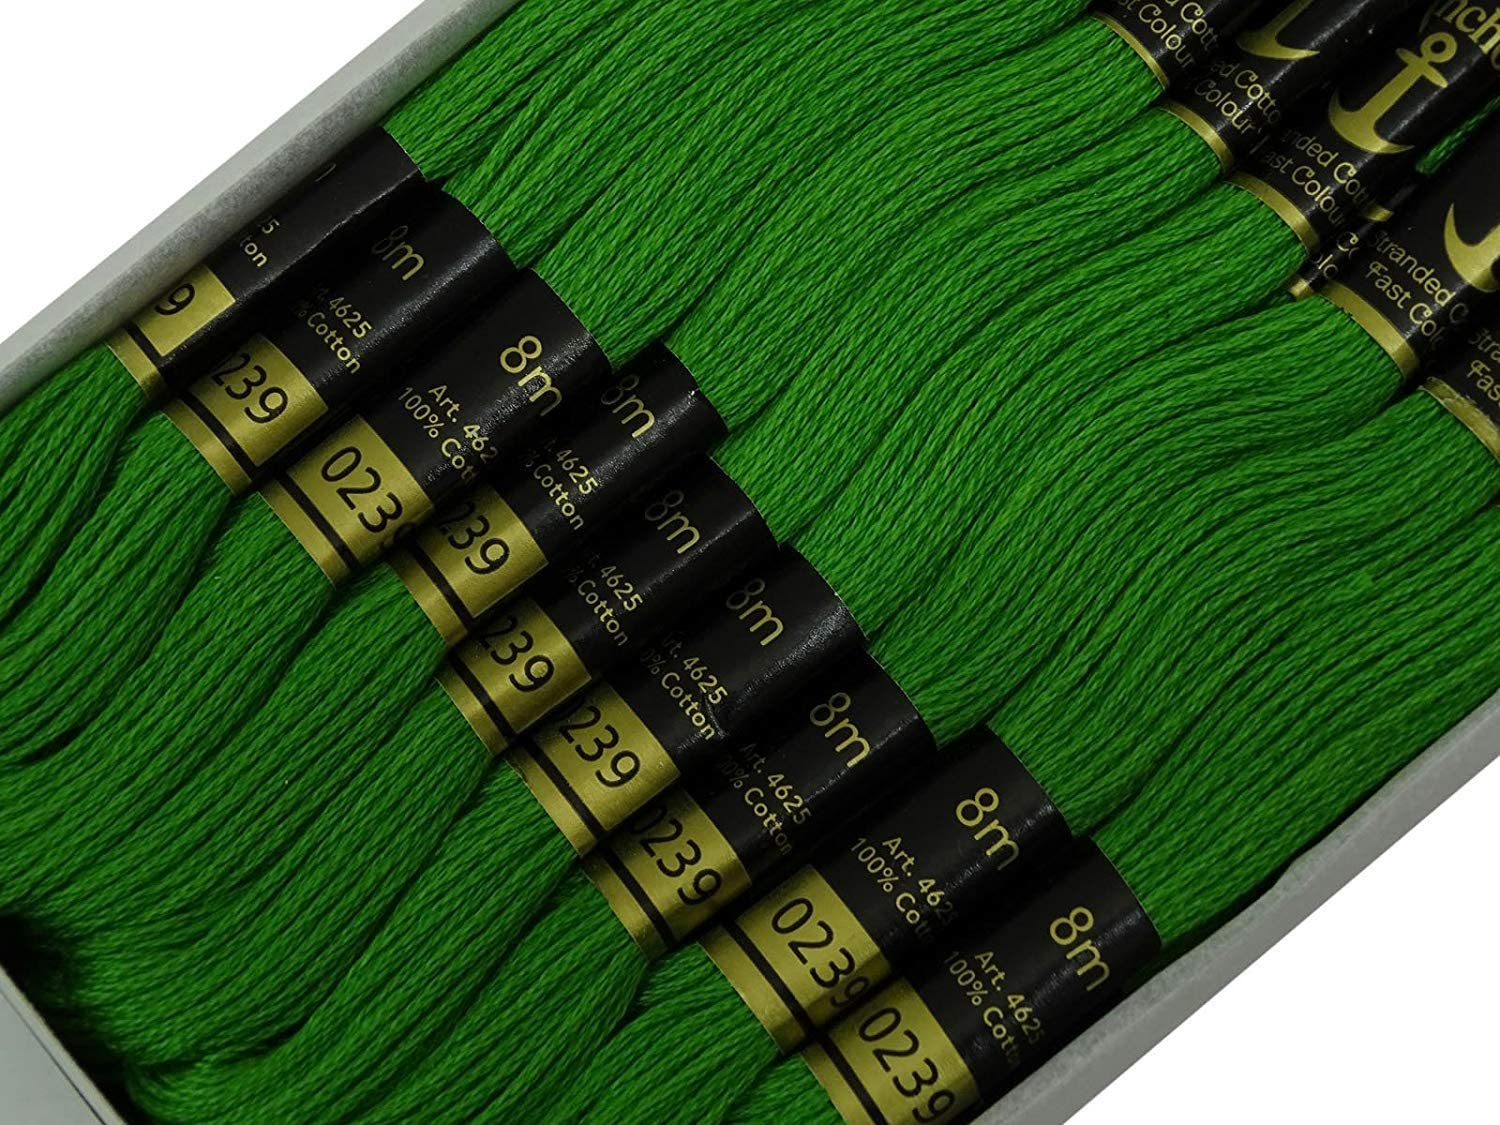 25 Anchor Embroidery Cotton Thread  Skeins  Floss in Green Color